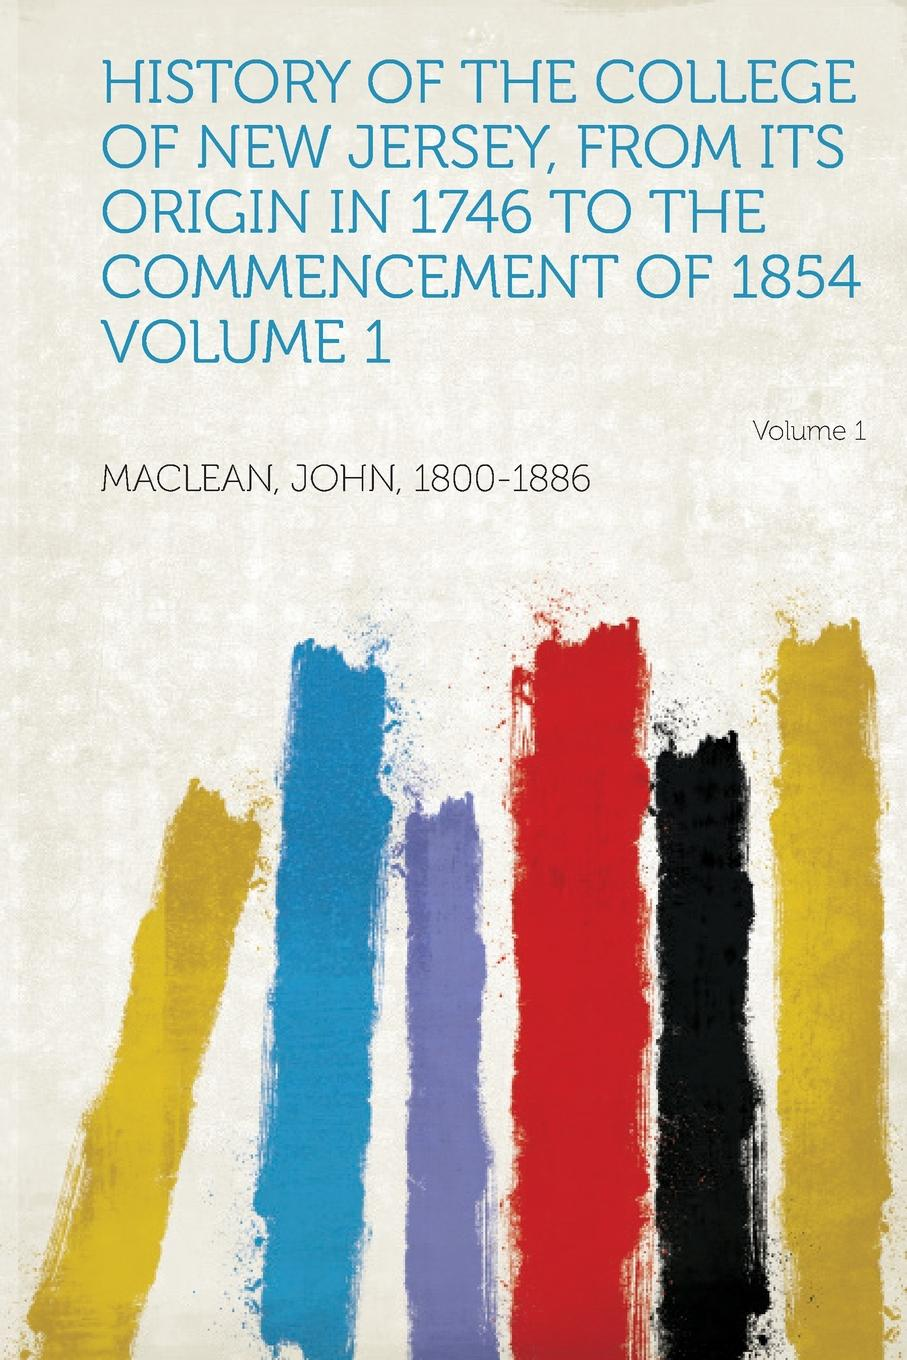 MacLean John 1800-1886 History of the College New Jersey, from Its Origin in 1746 to Commencement 1854 Volume 1